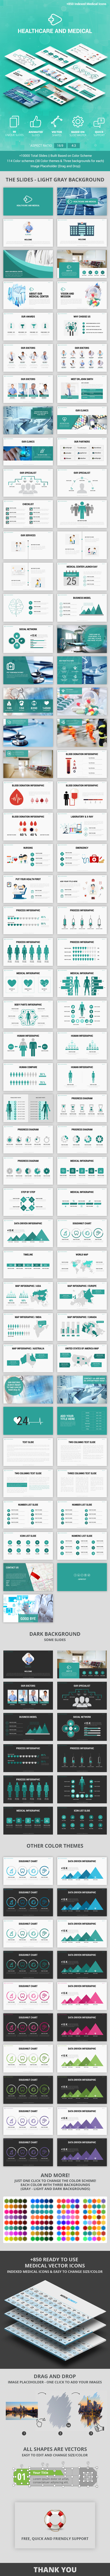 Healthcare and Medical - PowerPoint Presentation Template - Business PowerPoint Templates